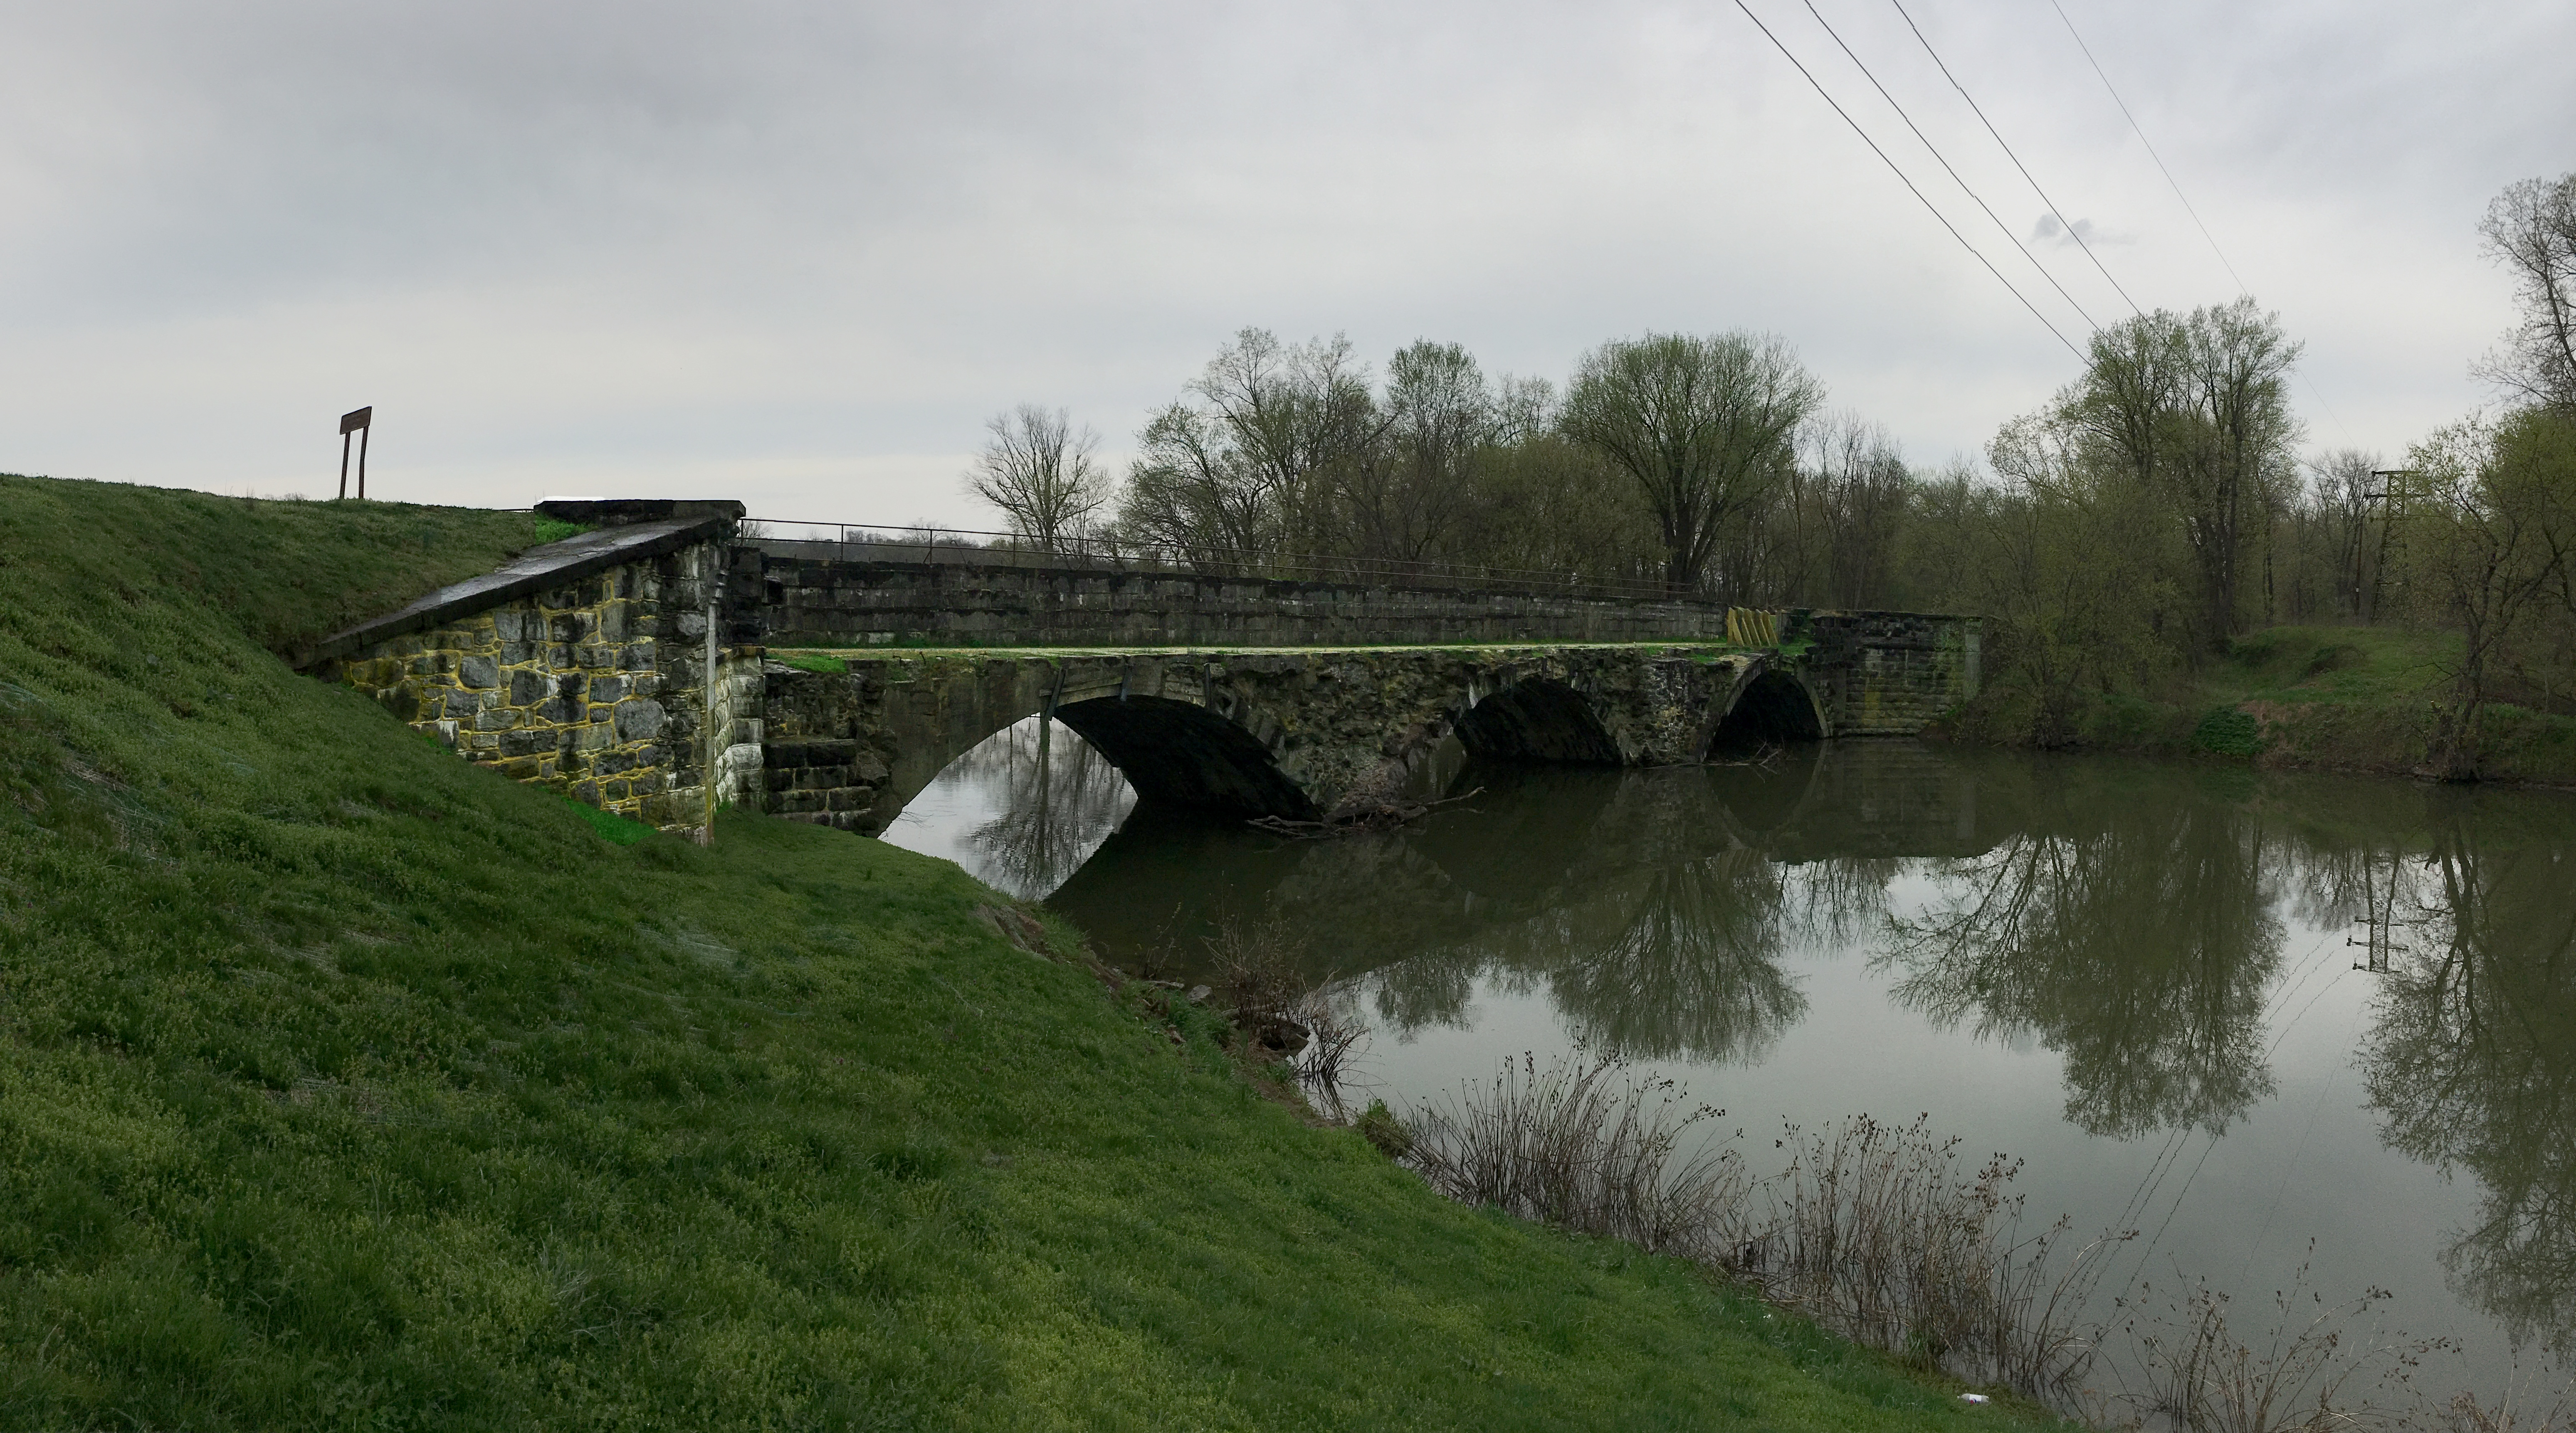 The Conococheague Aqueduct before restoration on a cloudy day.